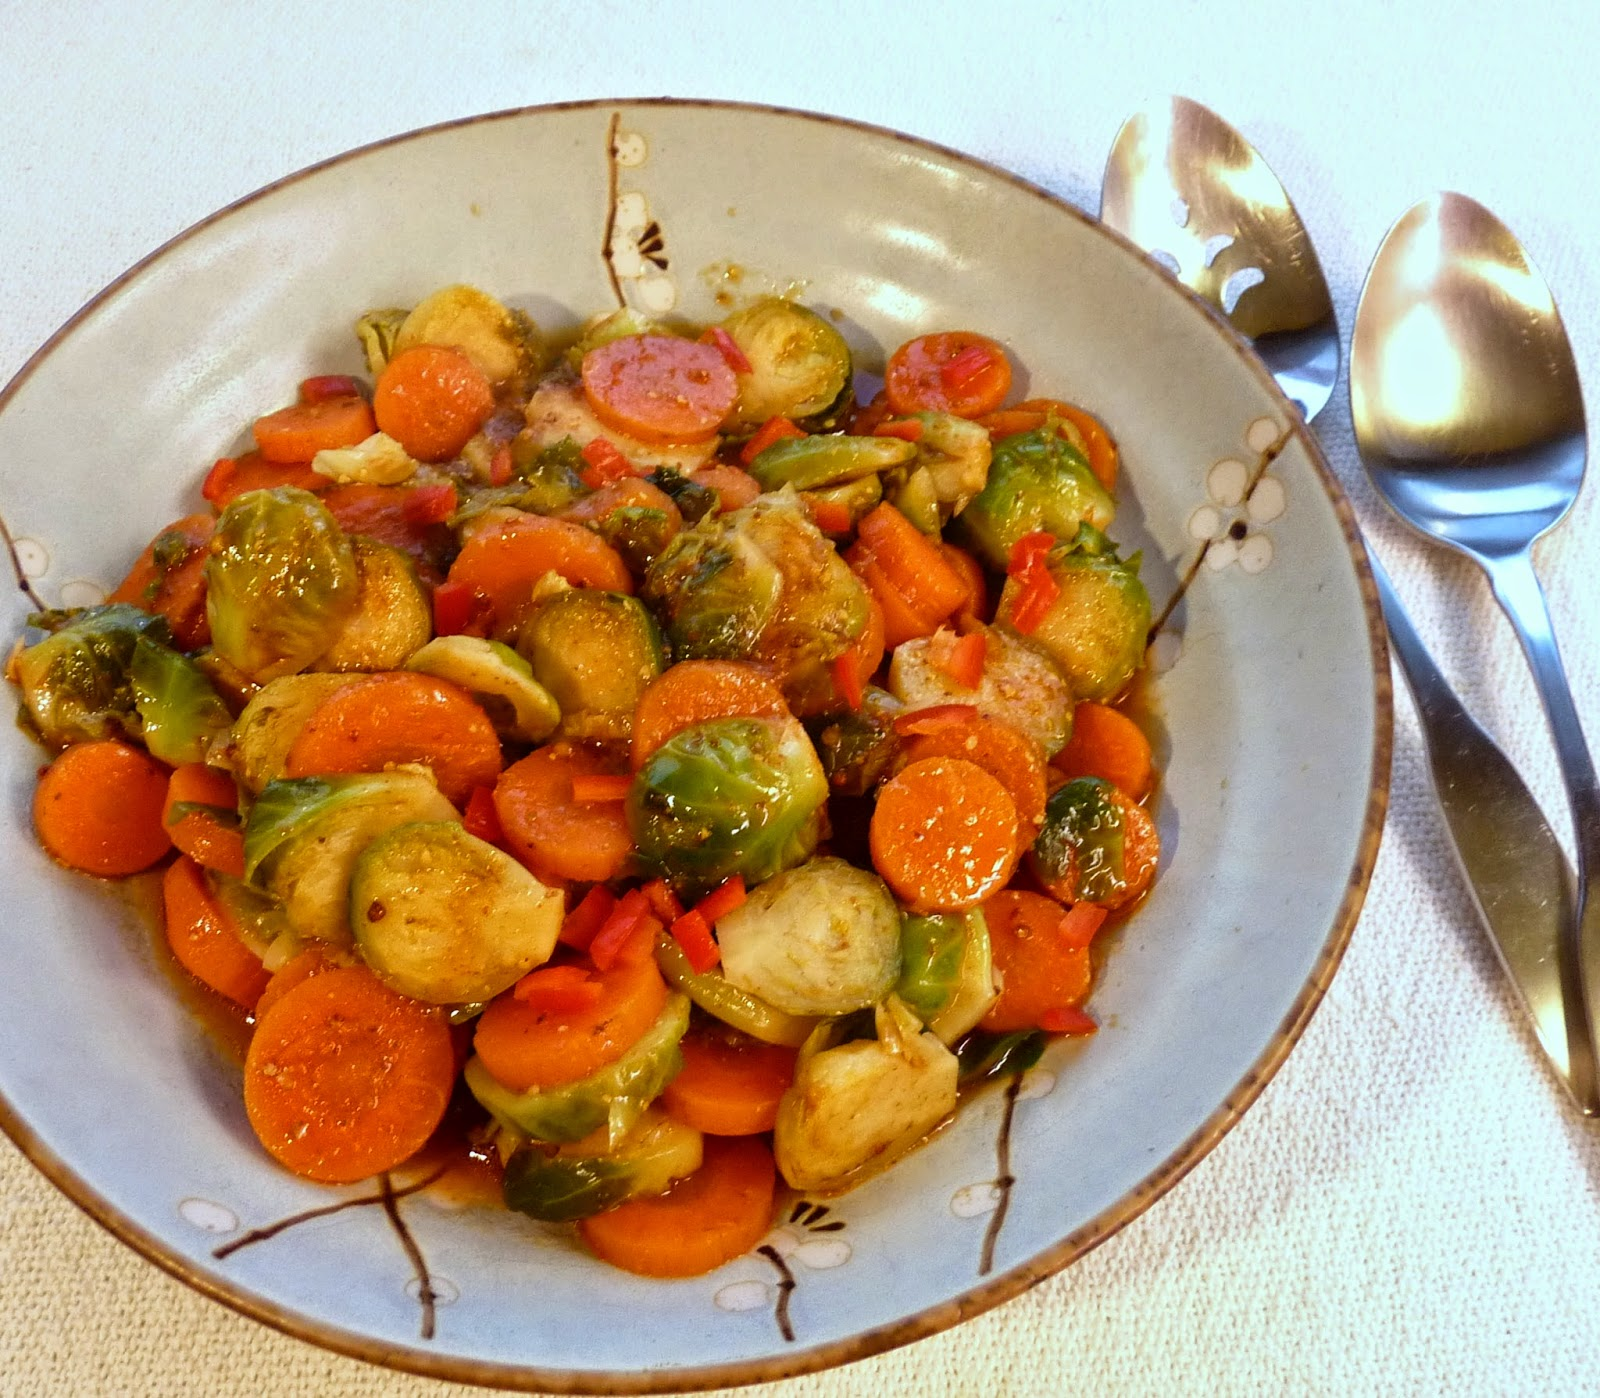 Brussels Sprouts & Carrot Coin Salad